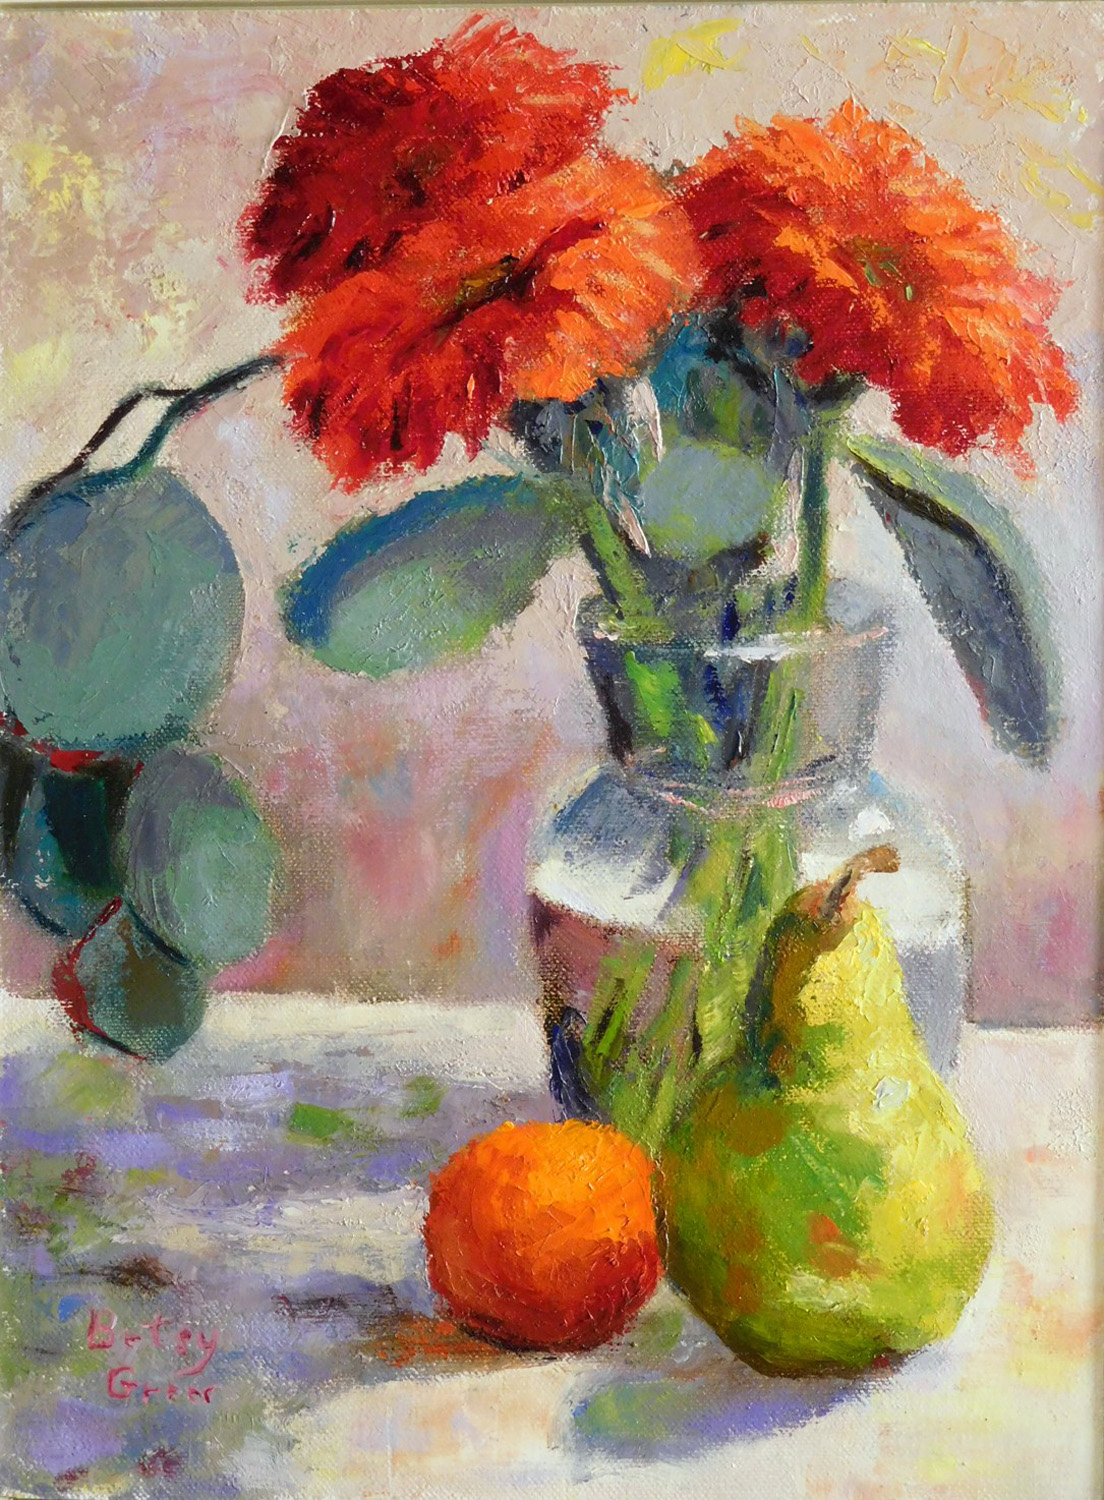 Gerber Daisies and Pear - Betsy Greer